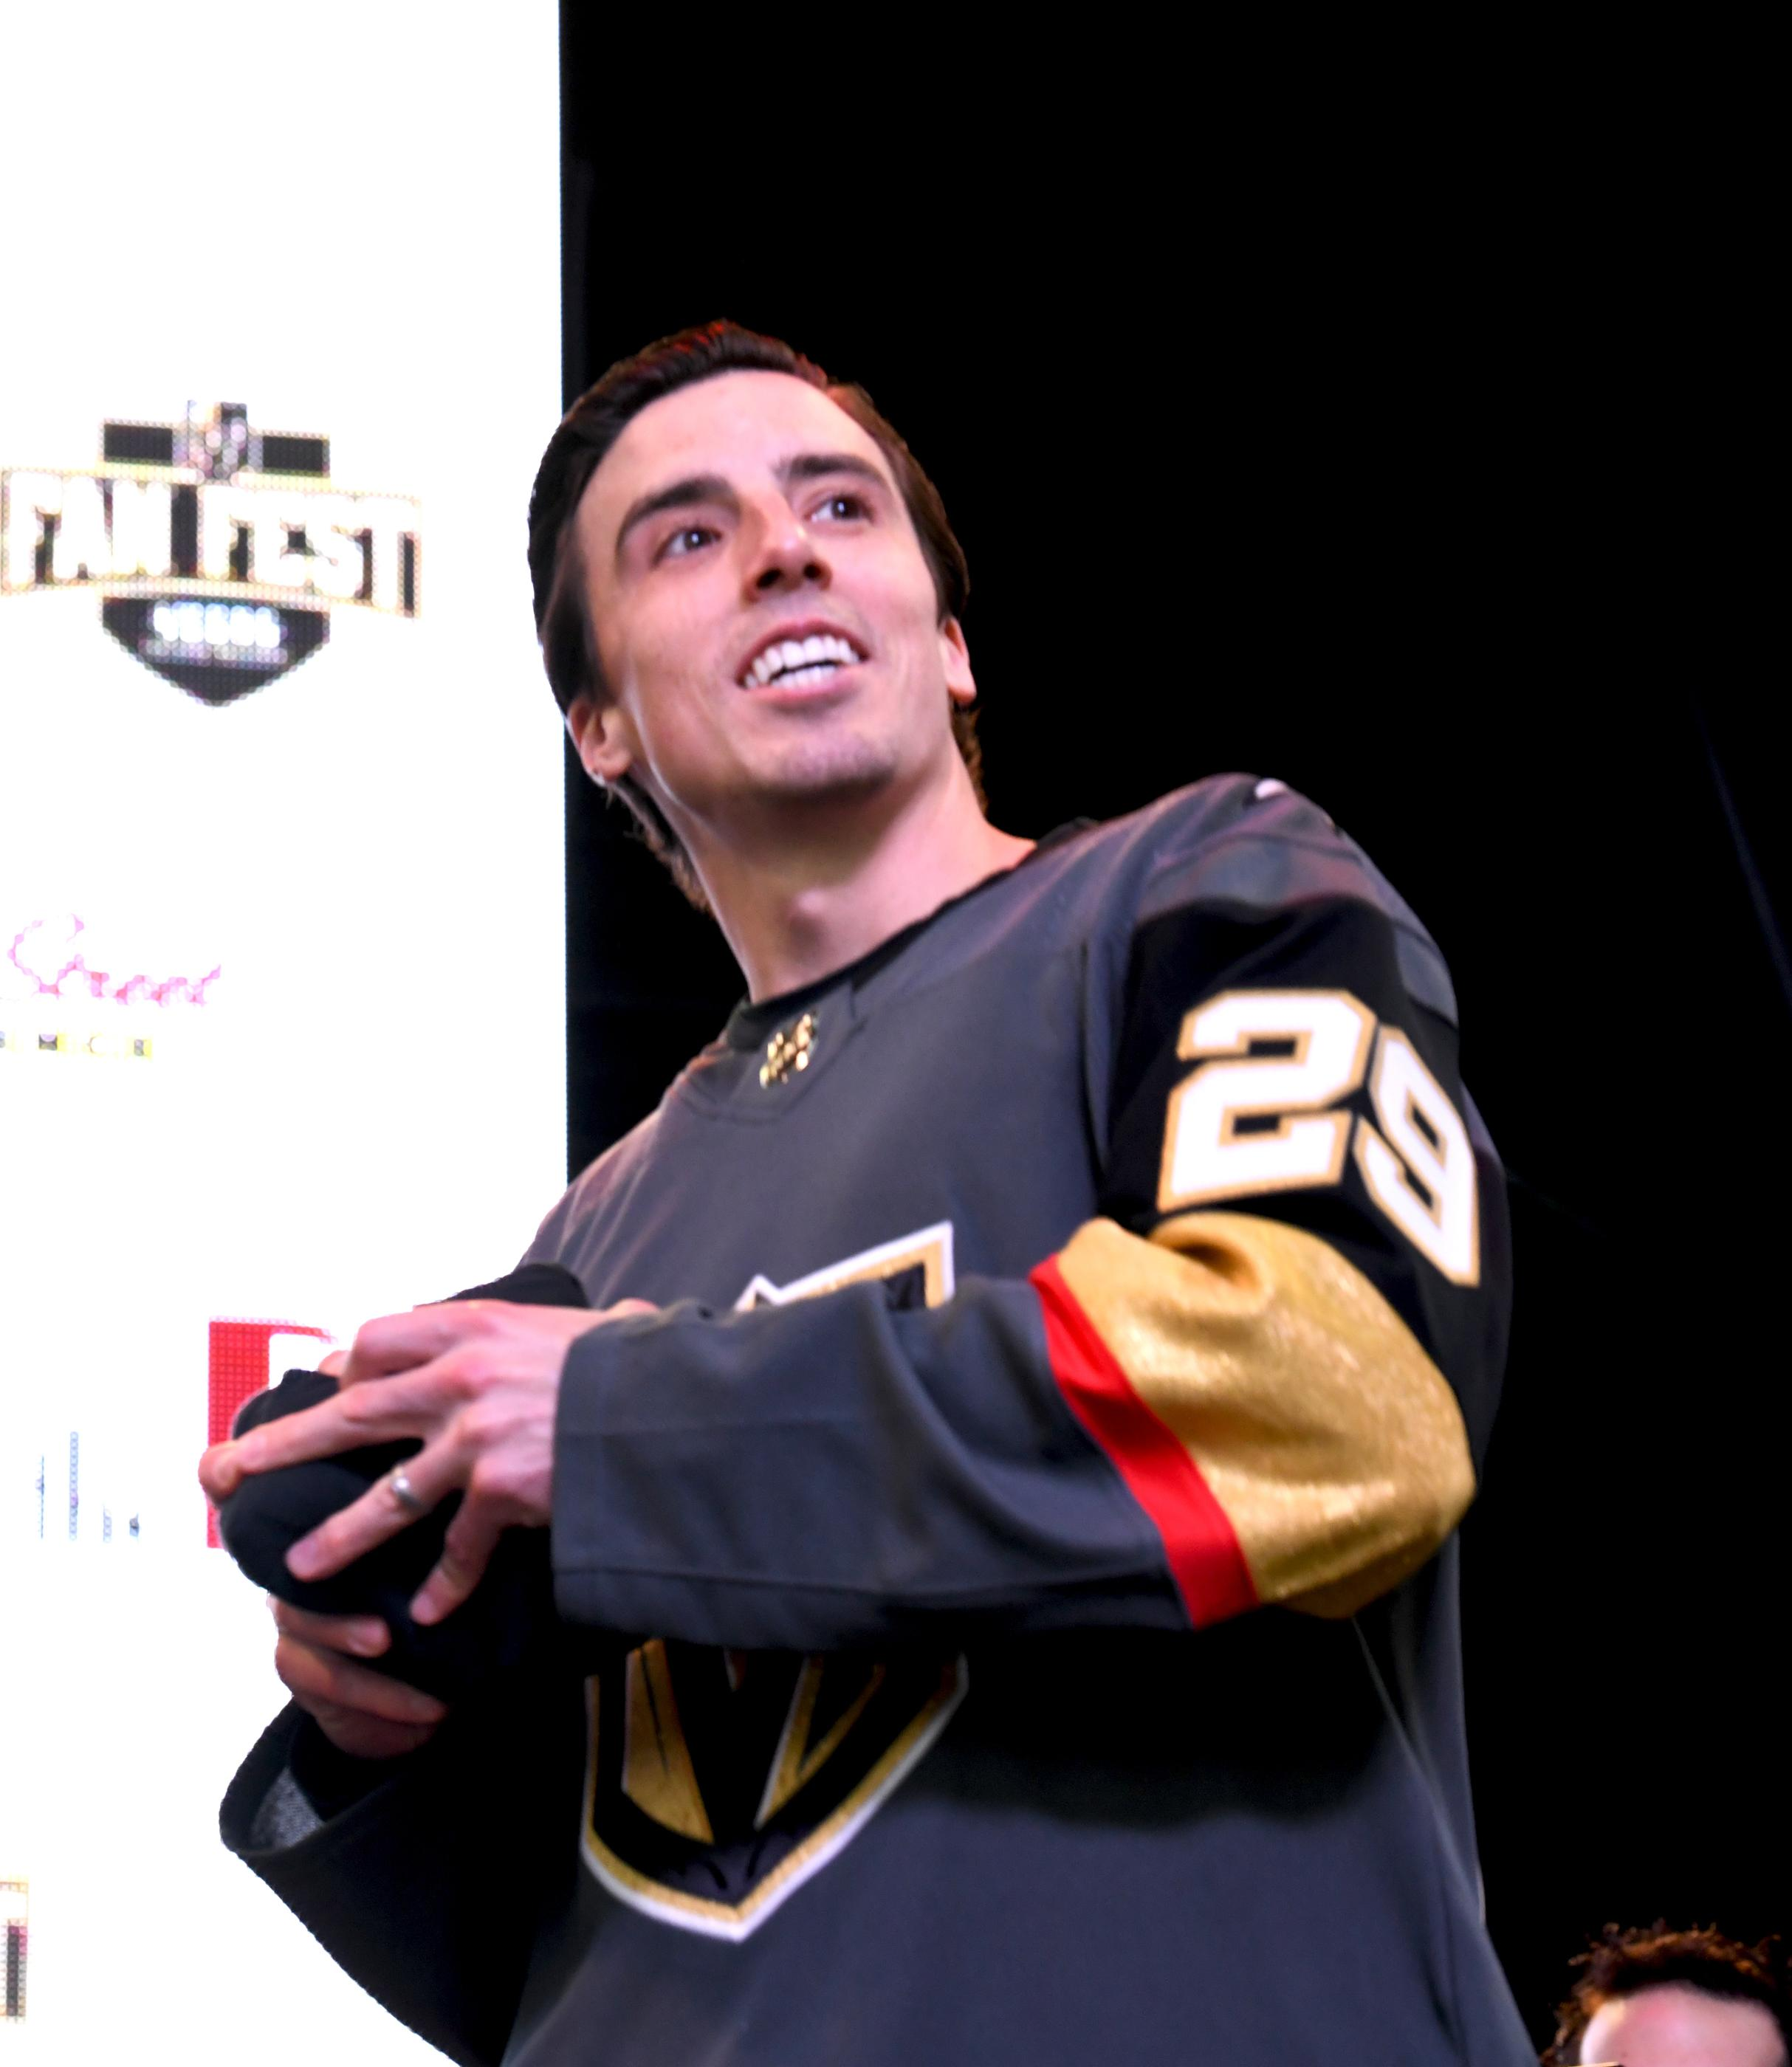 The Golden Knights host a Fan Fest with the D Las Vegas and Fremont Street Experience. Las Vegas Golden Knights G0alie Marc-Andre Fleury prepares to throw a t-shirt to fans as the team takes the stage at Fremont Street Experience. Sunday, January 14, 2017. CREDIT: Glenn Pinkerton/Las Vegas News Bureau